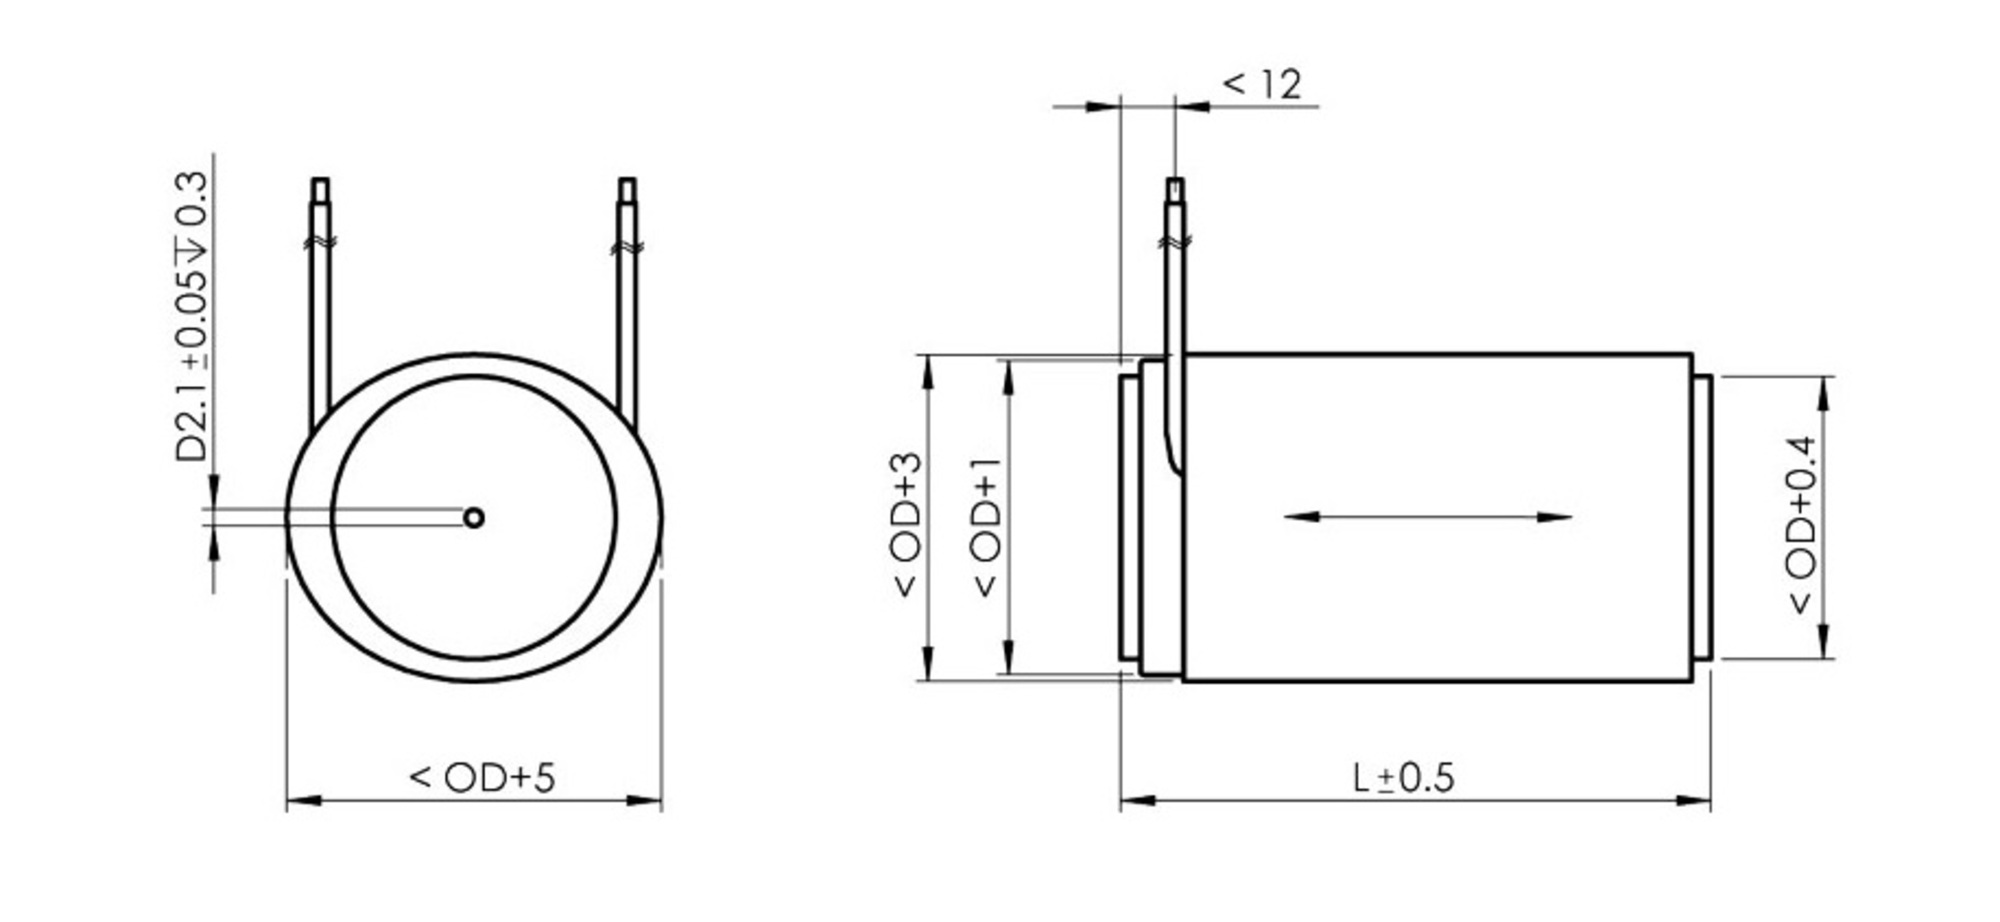 P 007 056 Pica Stack Piezo Actuators Rod Wiring Diagrams The Protective Polymer Layer Can Be Dyed In Different Colors Standard Versions Are Delivered With Stranded Wires And Covered Black